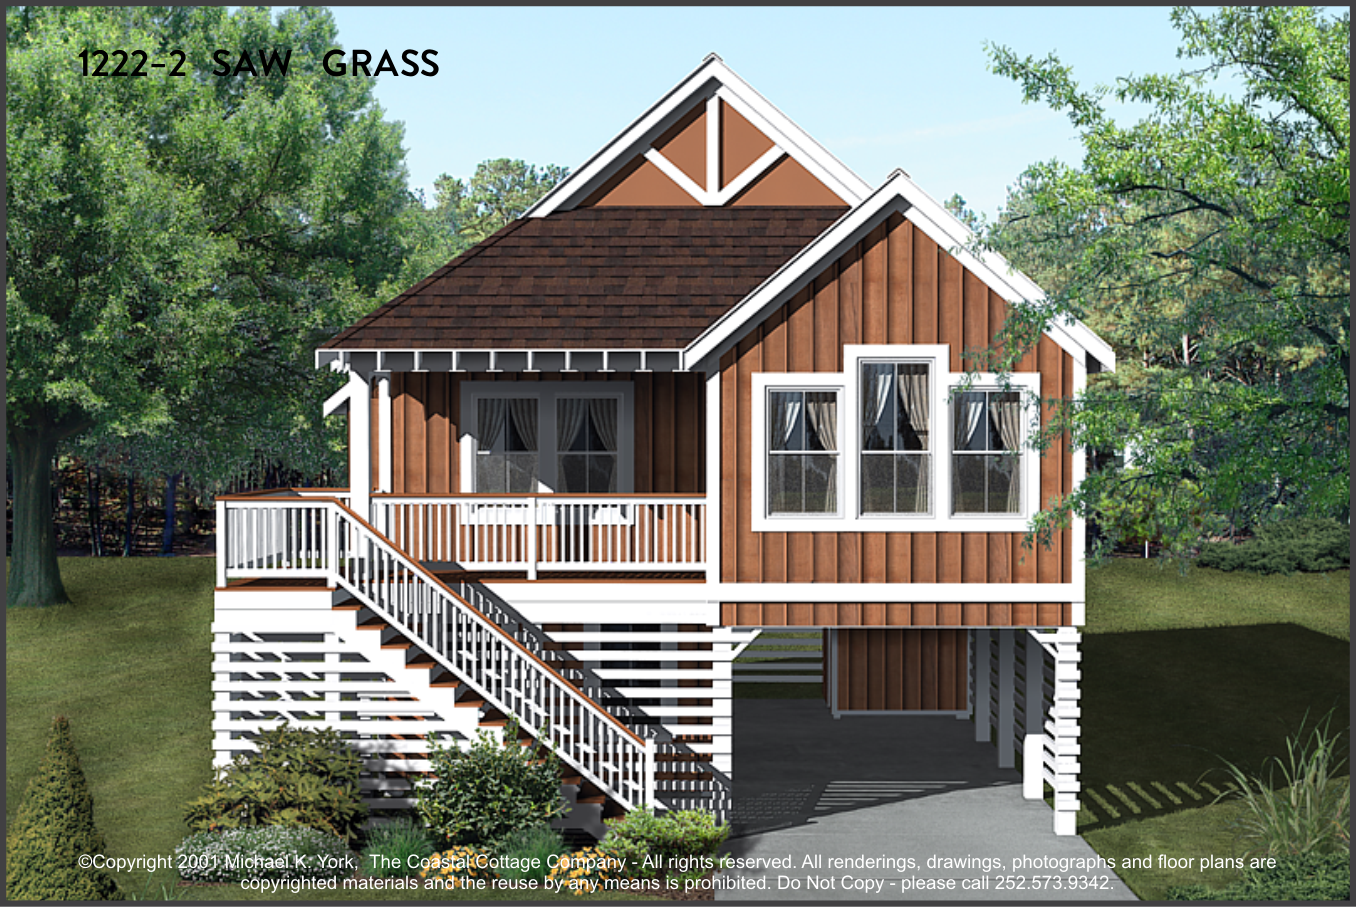 The Coastal Cottage Co Outer Banks Home Plans Coastal House Plans Small Beach Houses House On Stilts